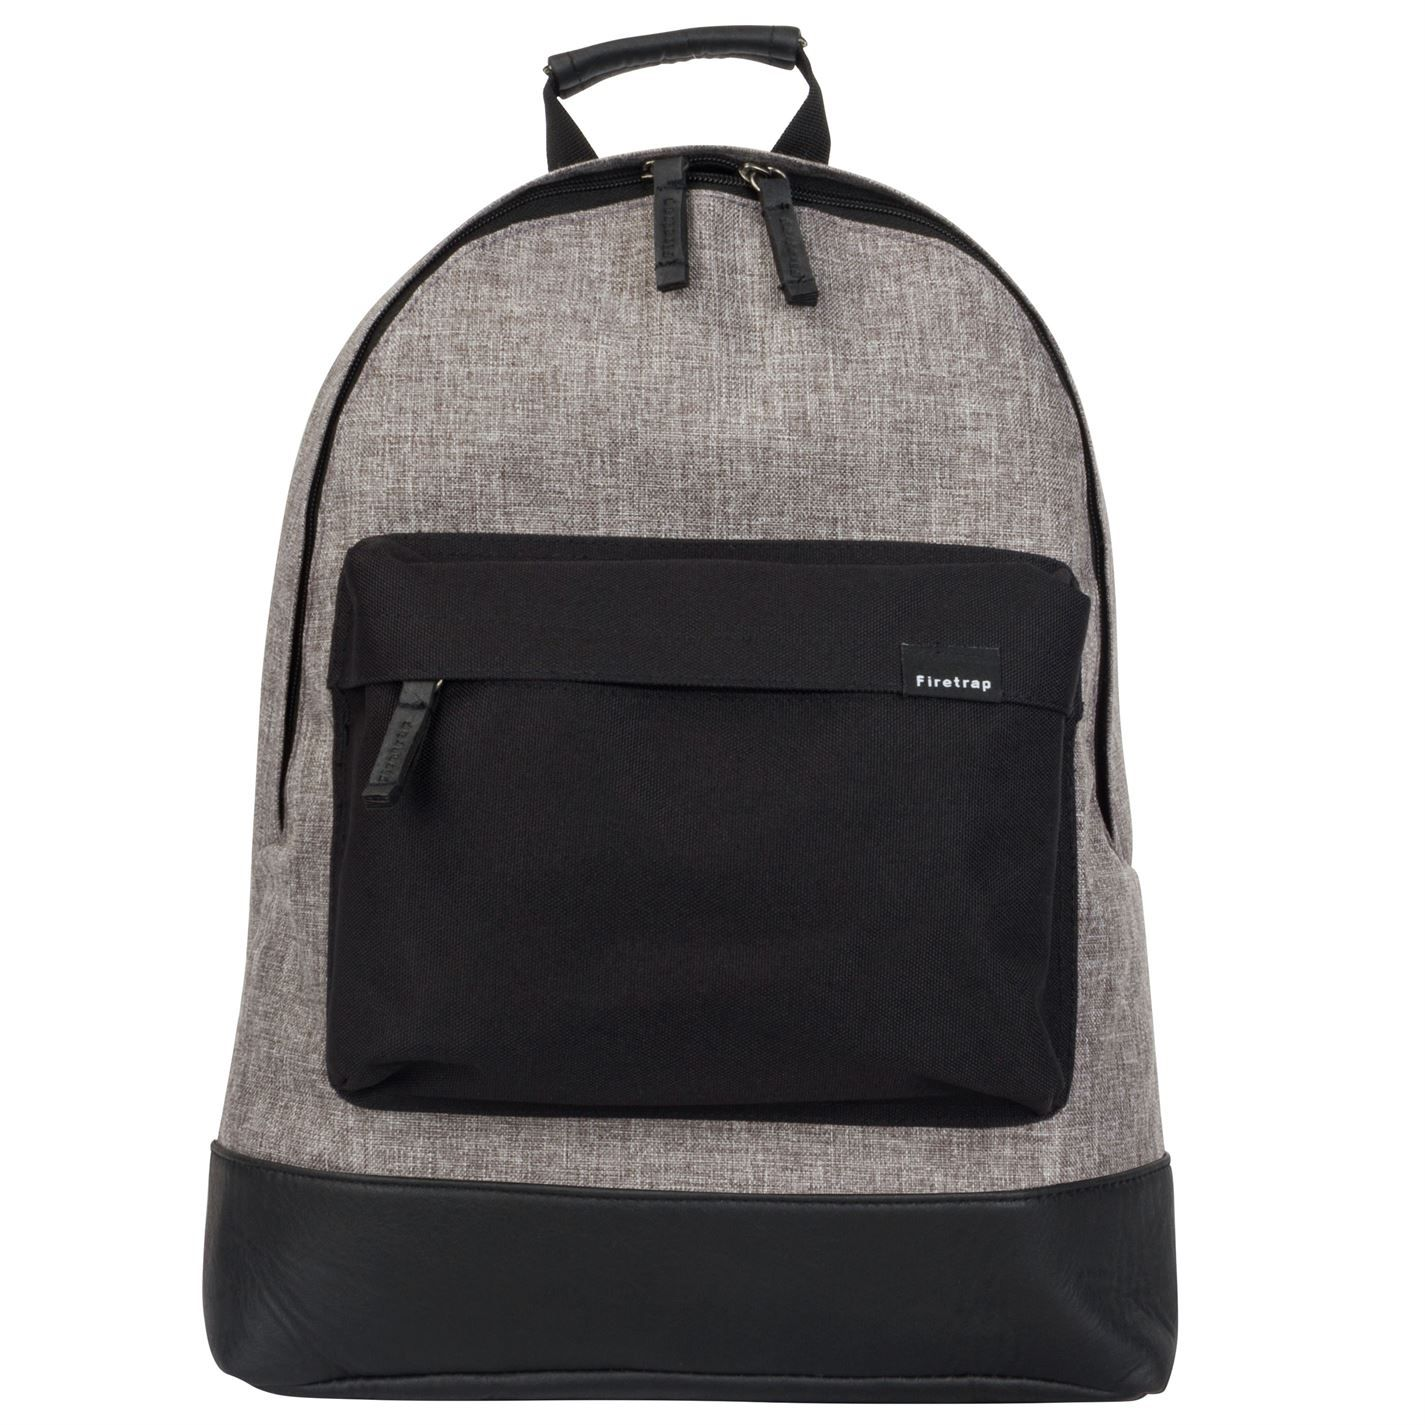 Firetrap Classic Backpack Bag Large Zipped Compartment Pockets Everyday